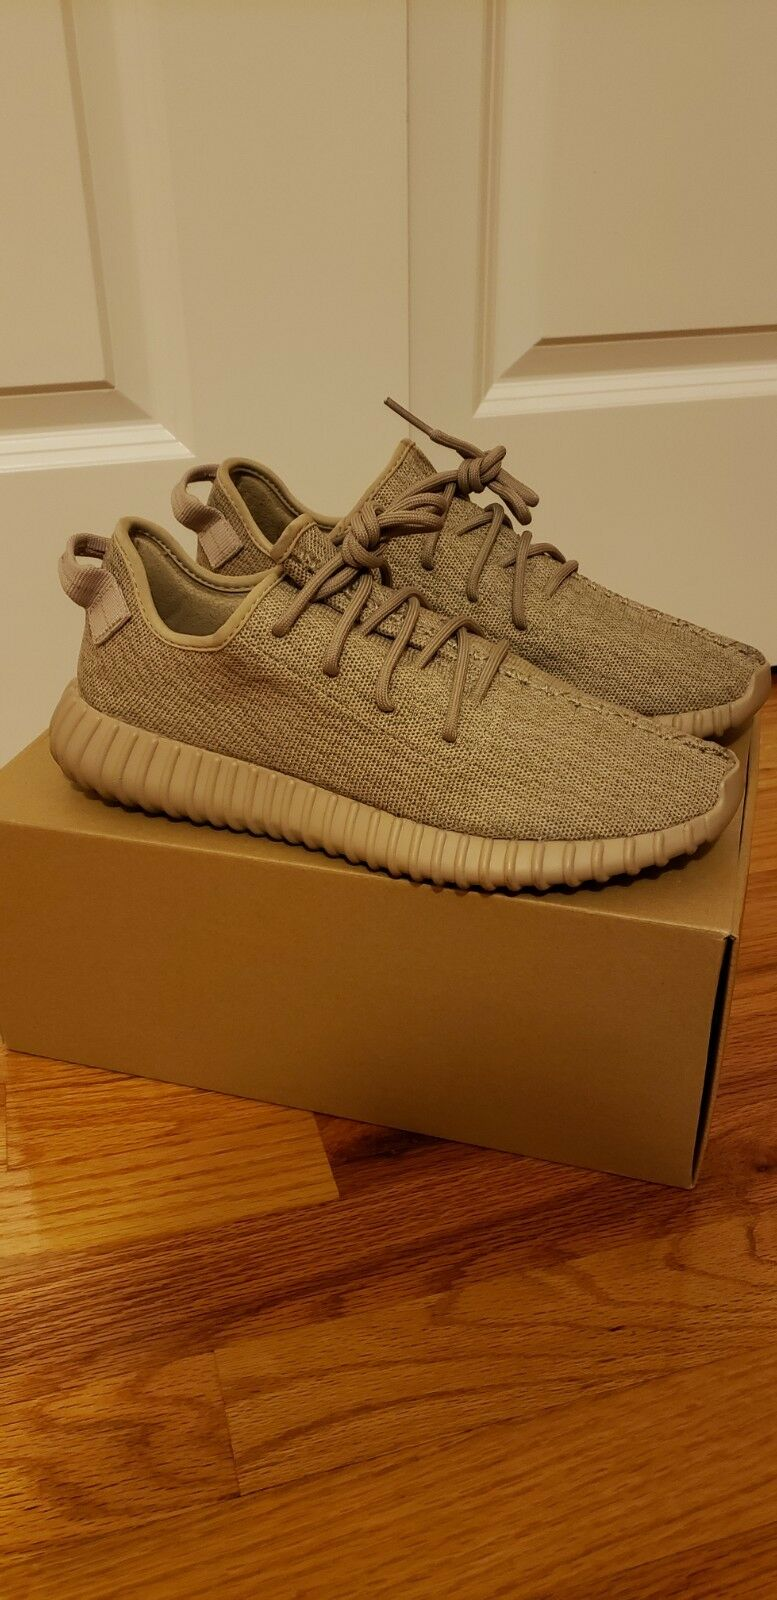 86e2f2ccce902 USED YEEZY V1 Tan - Men 10 Adidas Oxford neoreo7664-Athletic Shoes ...